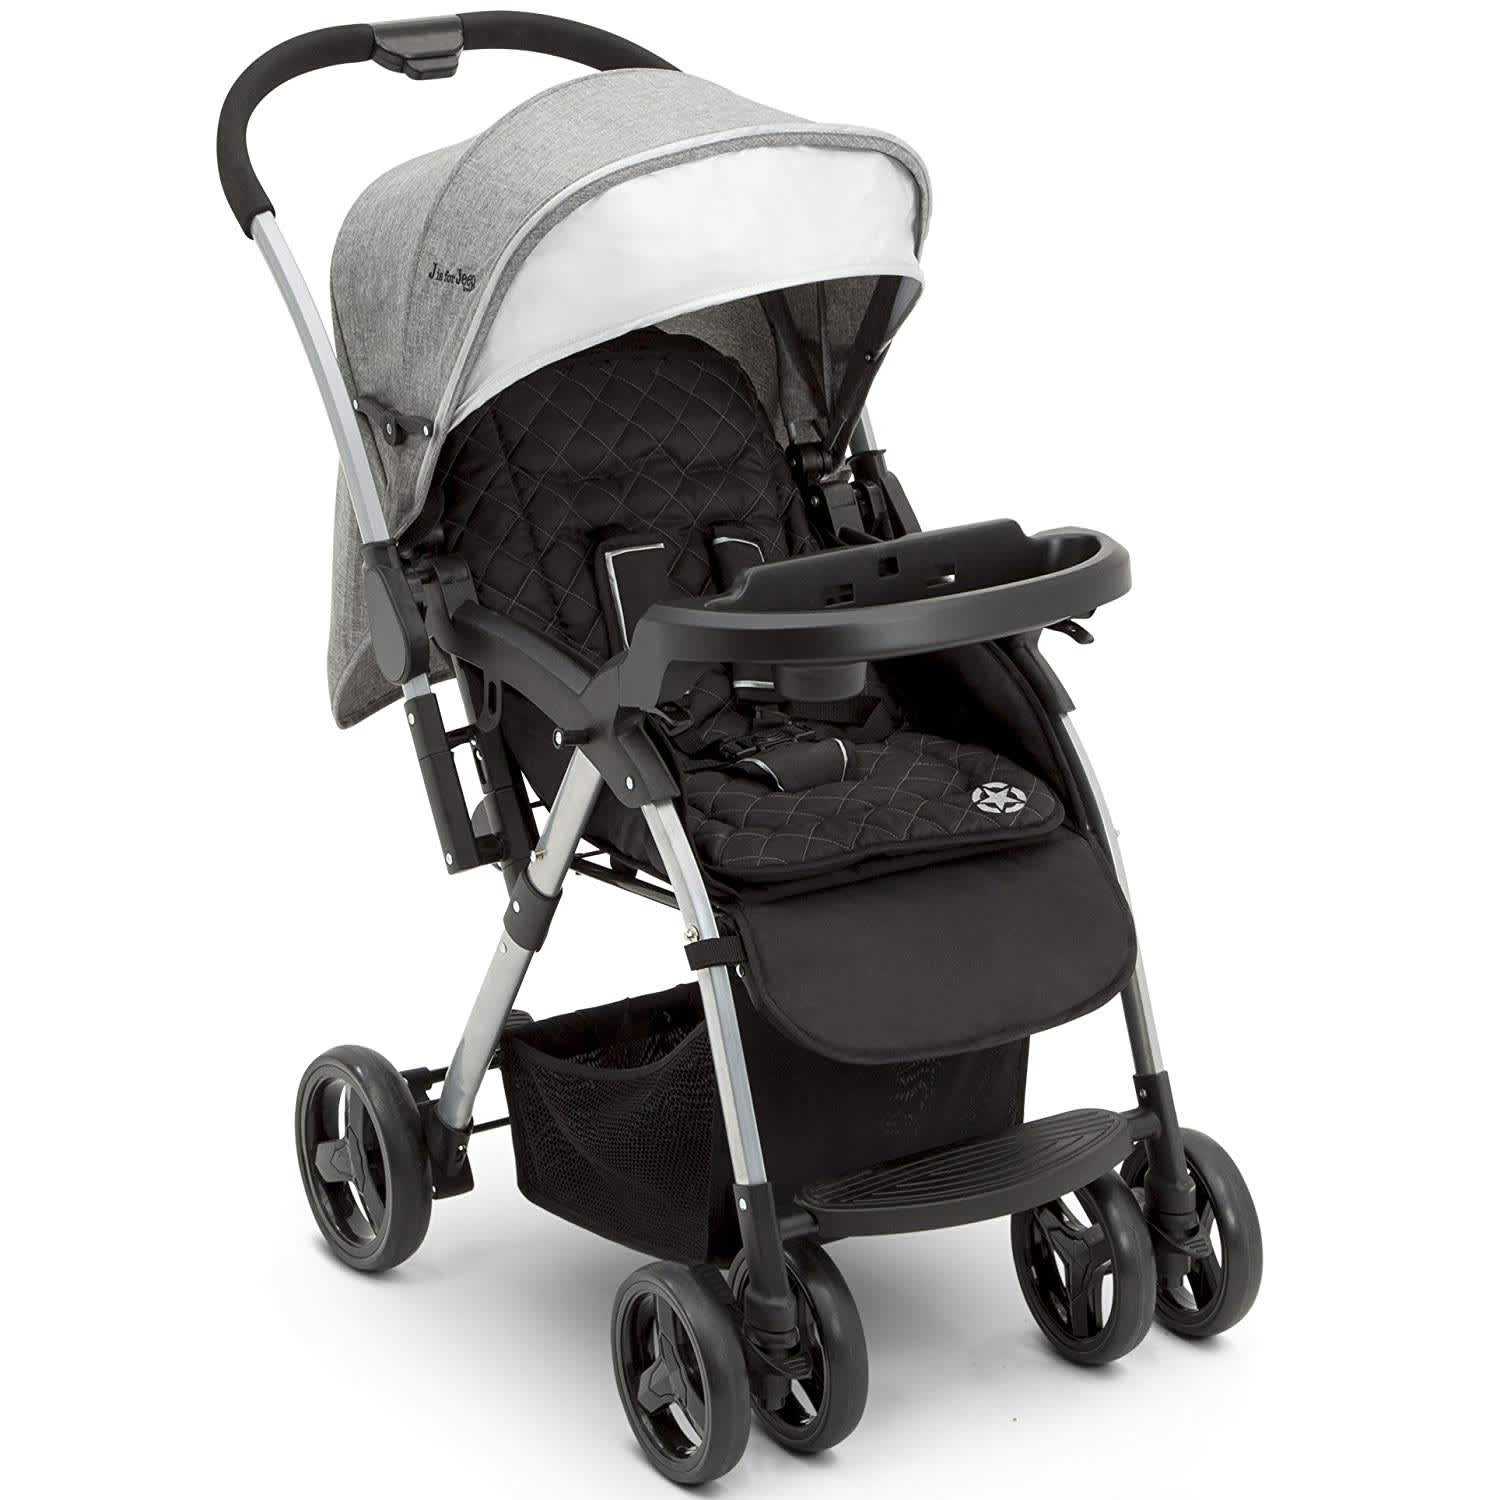 Unlimited-Reversible-Handle-Stroller